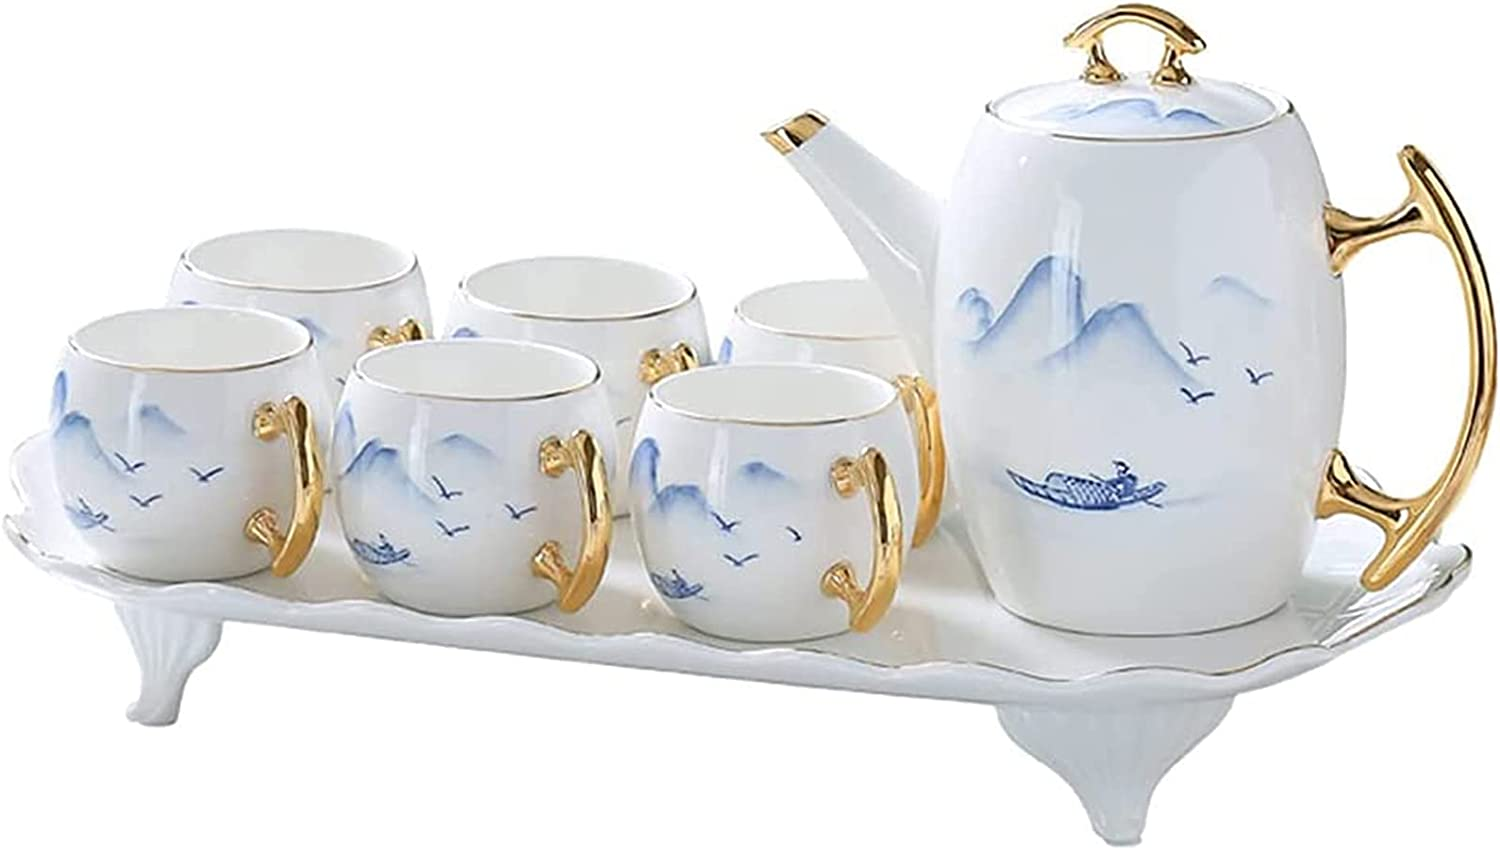 Ceramic Teapot Set 6 Free Shipping Cheap Bargain Dallas Mall Gift Tea Cups M Brewer with Handle 1000ML